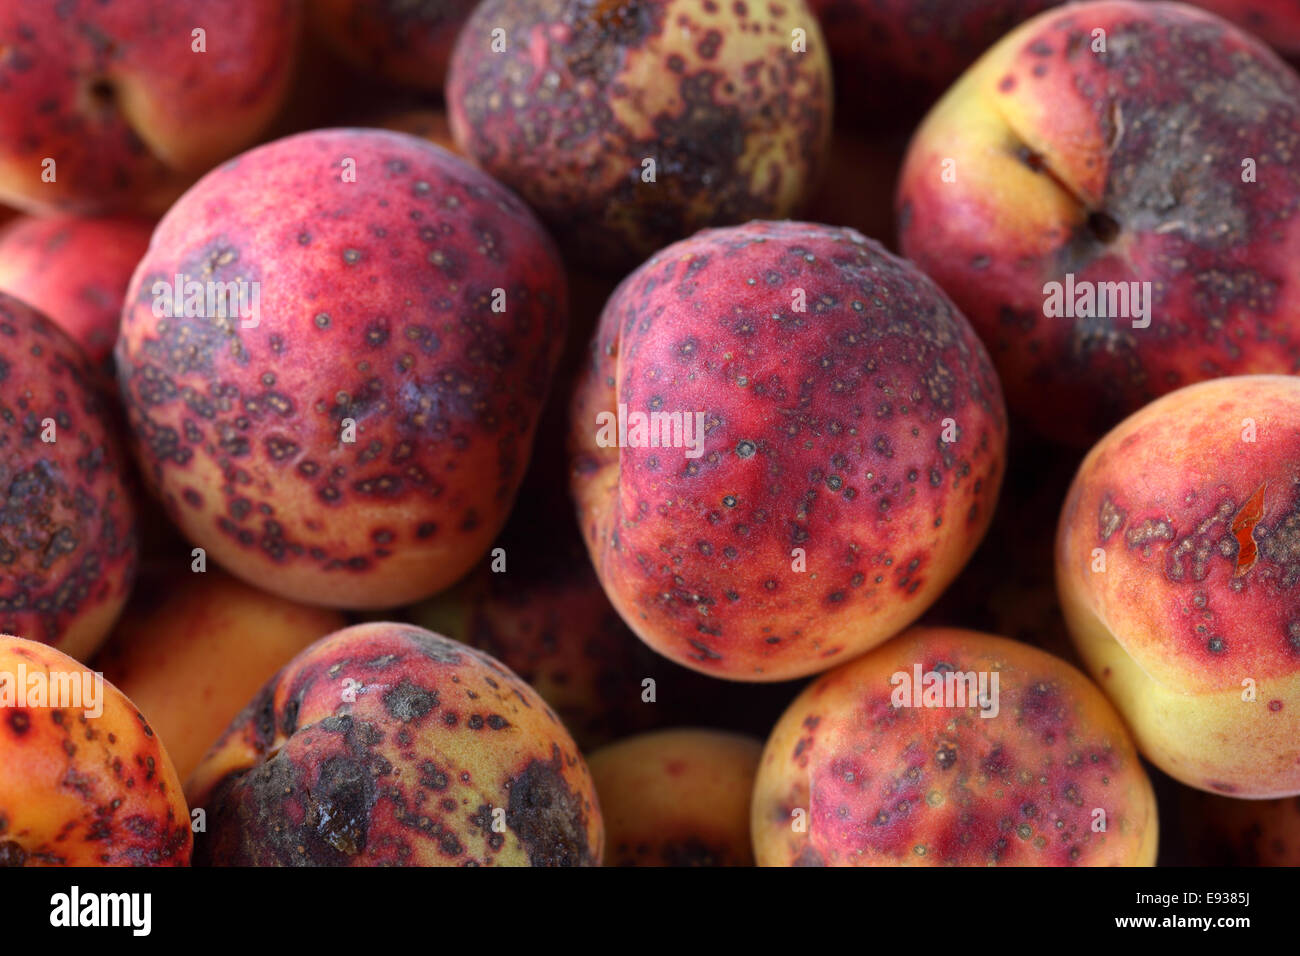 Illness apricot with black dots. Close-up - Stock Image